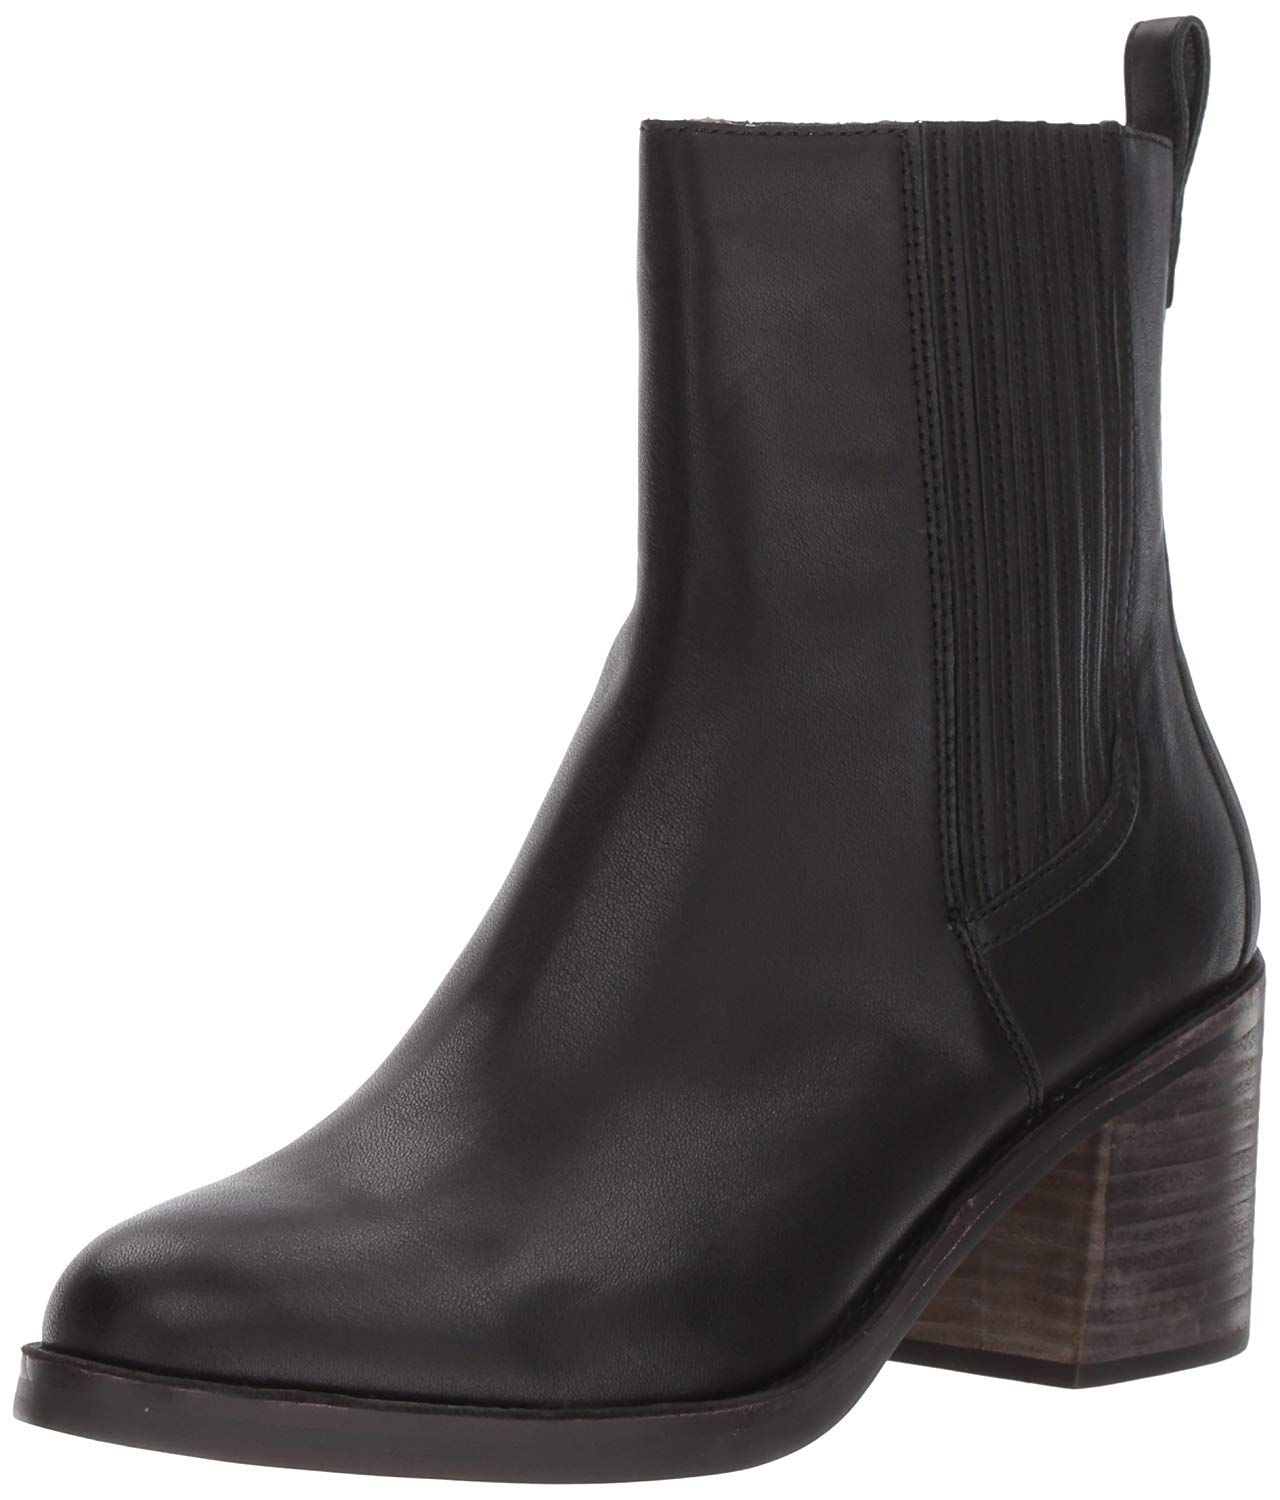 773b987943a UGG Women's Camden Ankle Bootie *** Thank you for visiting our ...